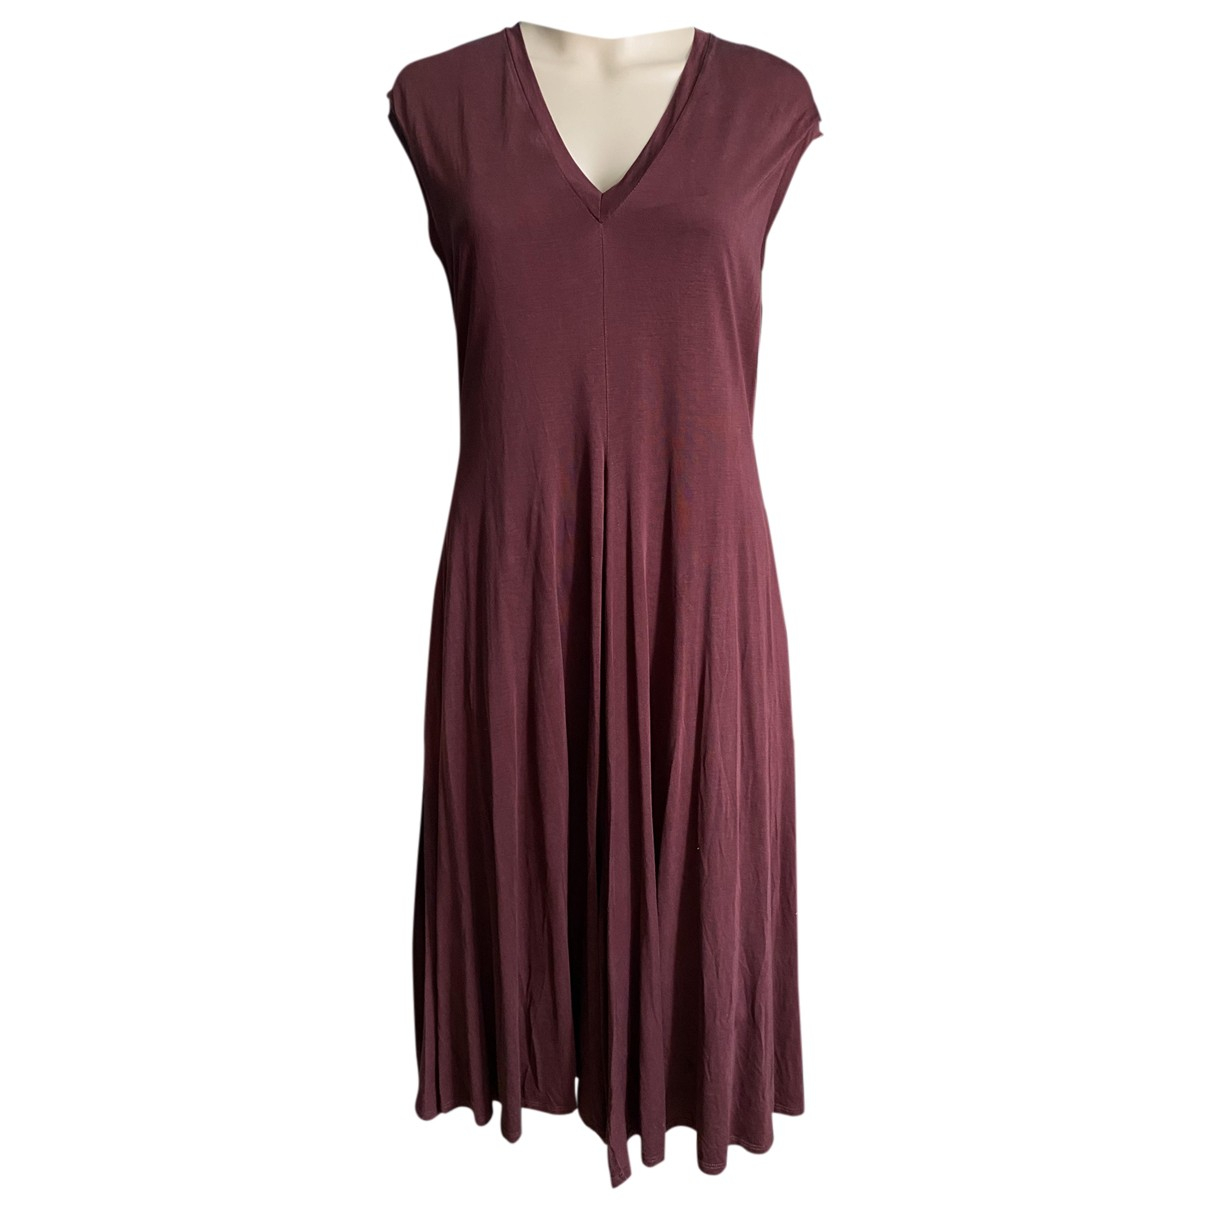 Acne Studios \N Burgundy dress for Women L International